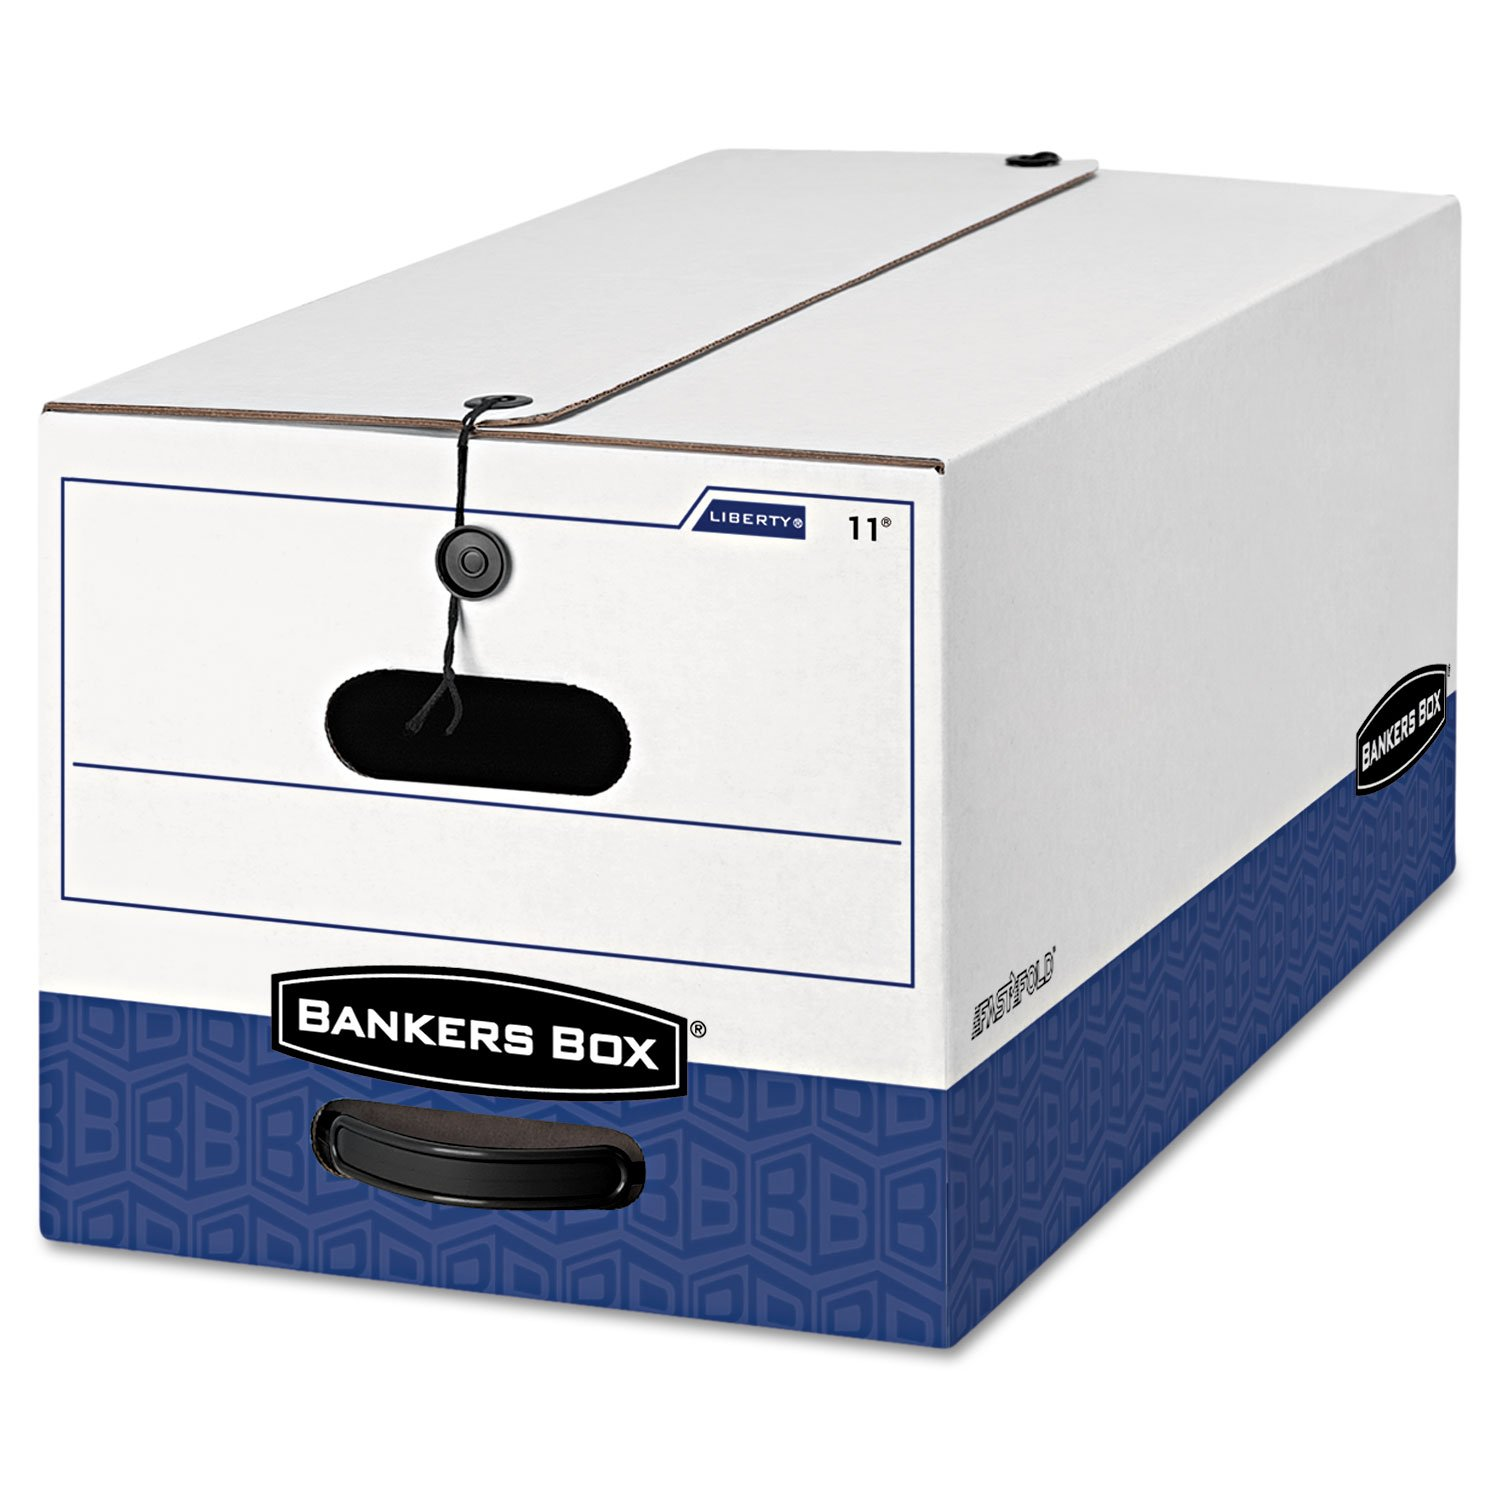 Bankers Box® - Liberty Max Strength Storage Box, Letter, 12 x 24 x 10, White/Blue, 12/Carton - Sold As 1 Carton - Maximum security box with string & button closure keeps contents secure, even if box is overturned.